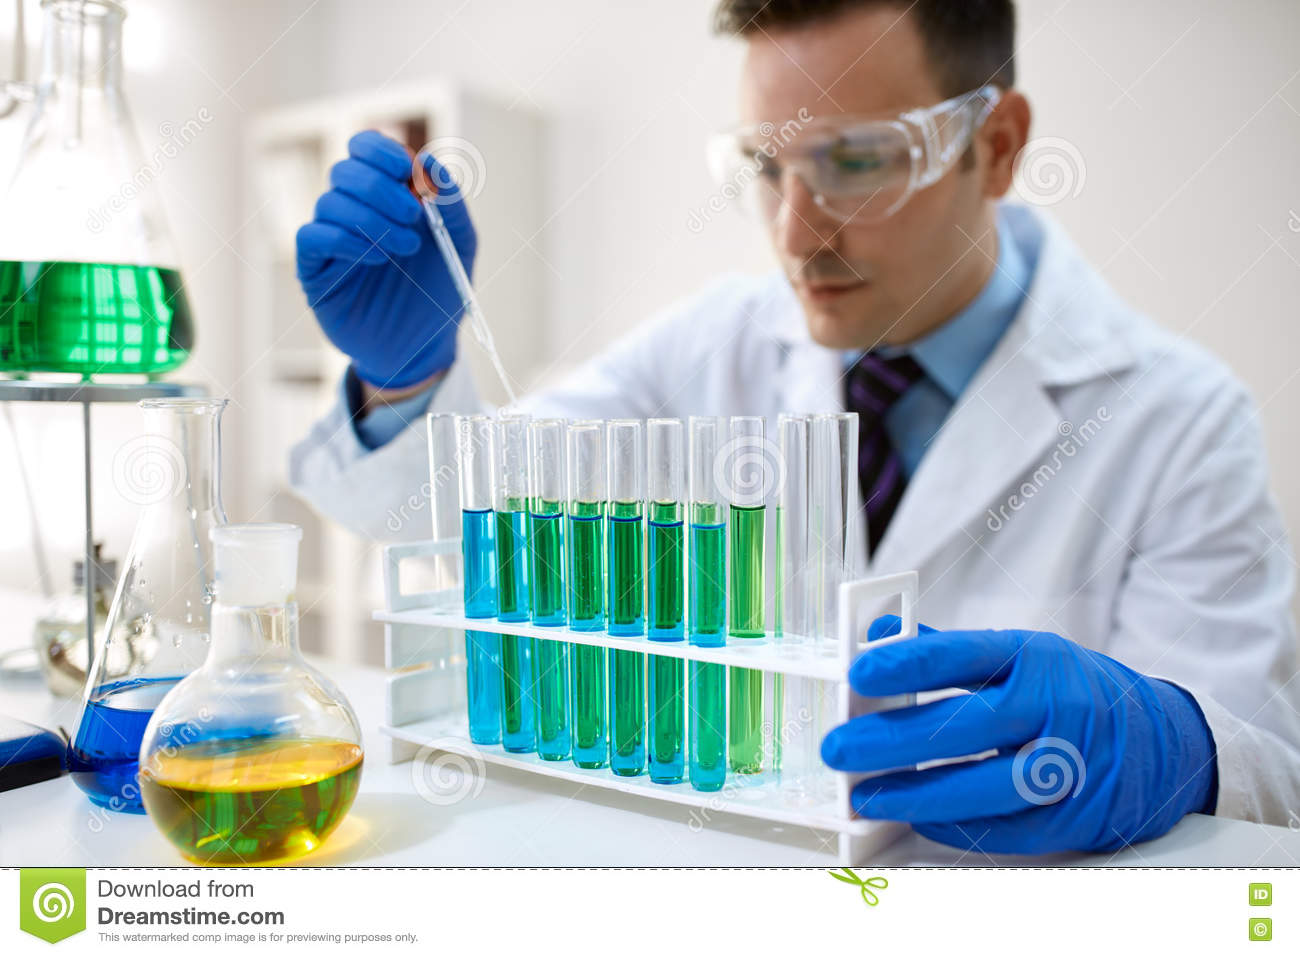 Male scientist using chemistry liquid for research